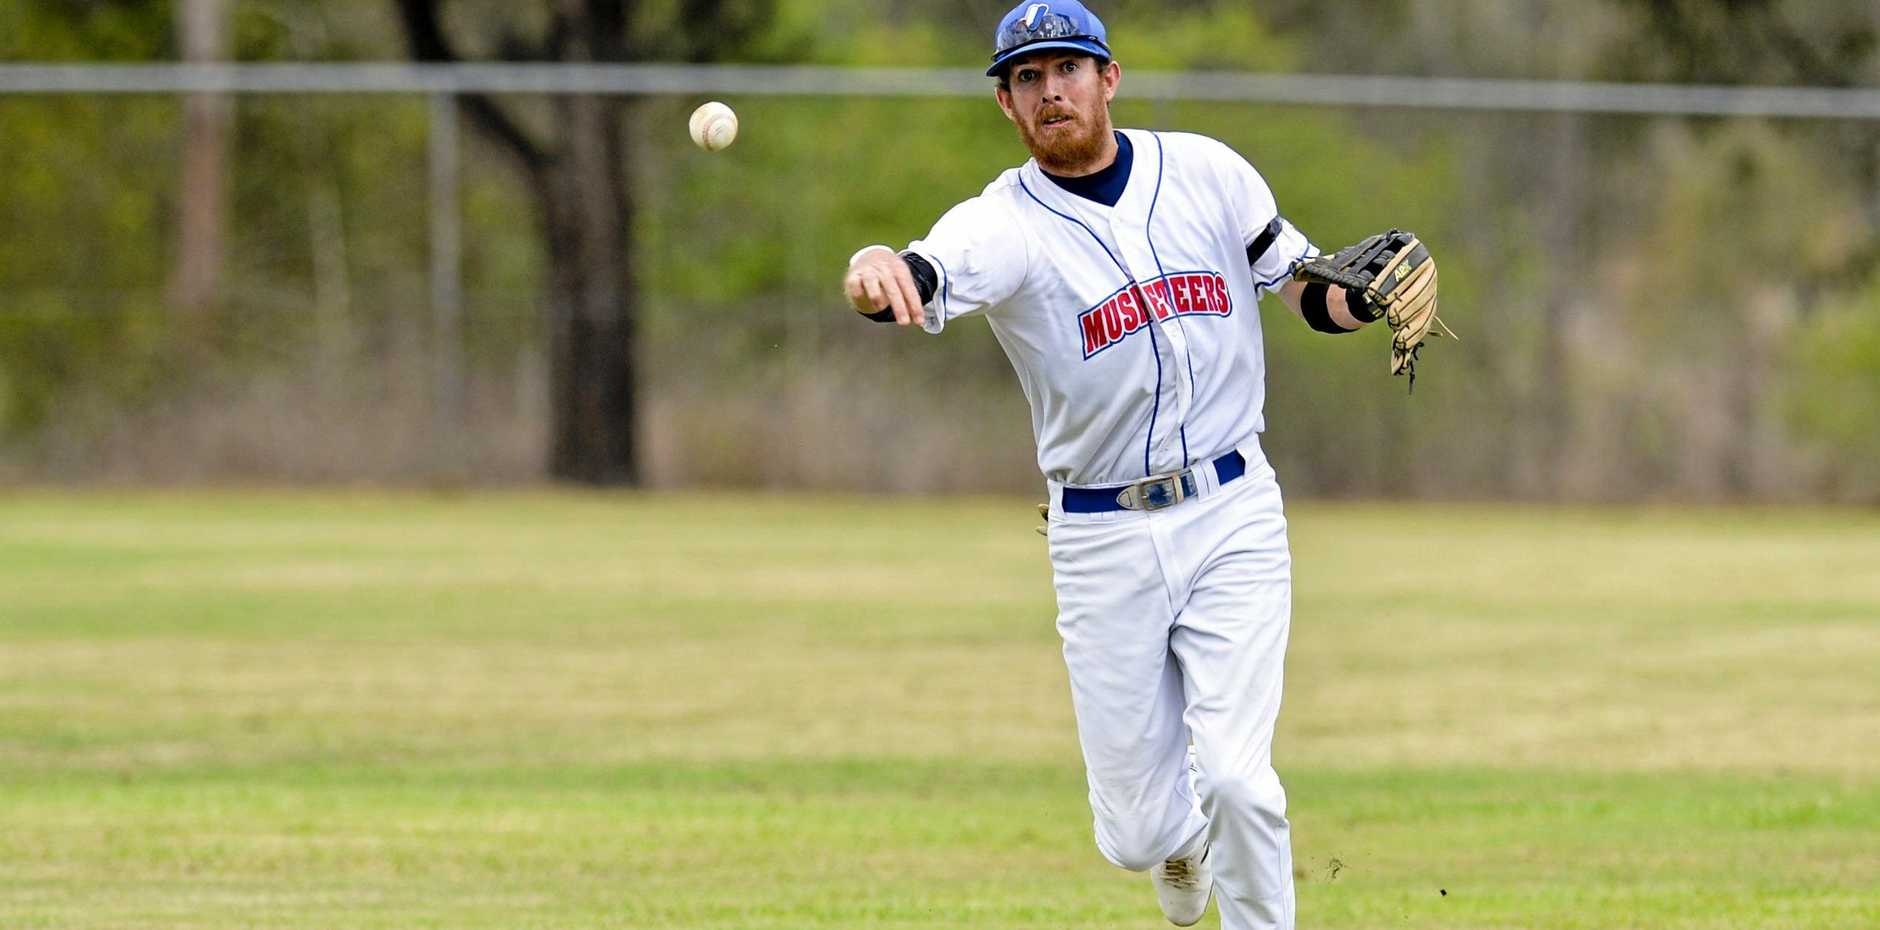 Ipswich Musketeers v Redlands Rays GBL Baseball. Ipswich's Wade Dutton.